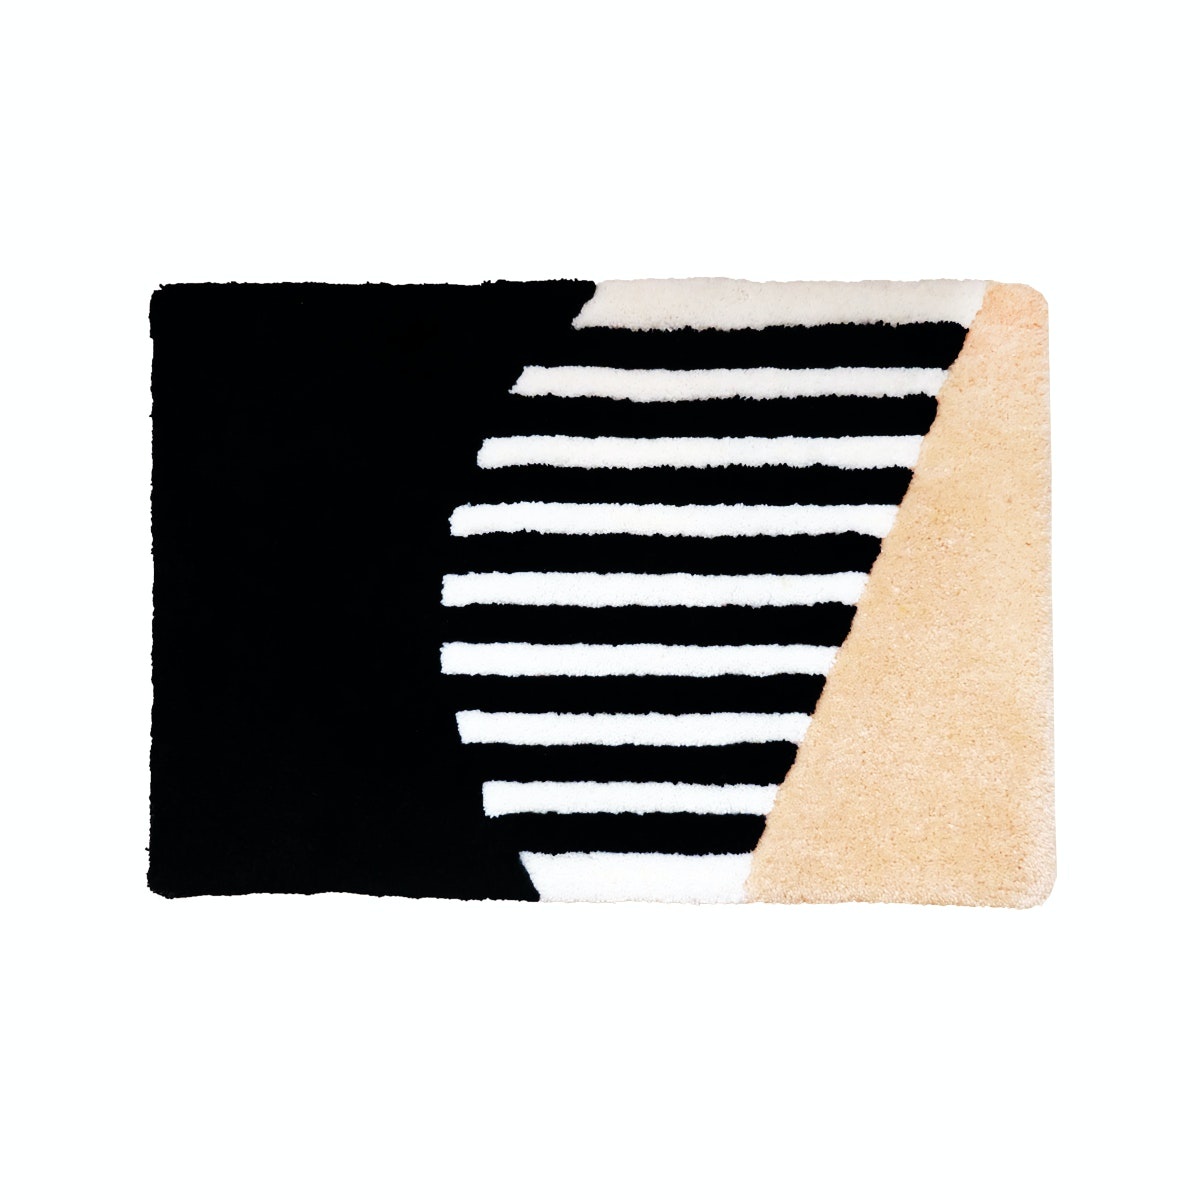 Eclectic Home Decor Creamy Stripes Doormat